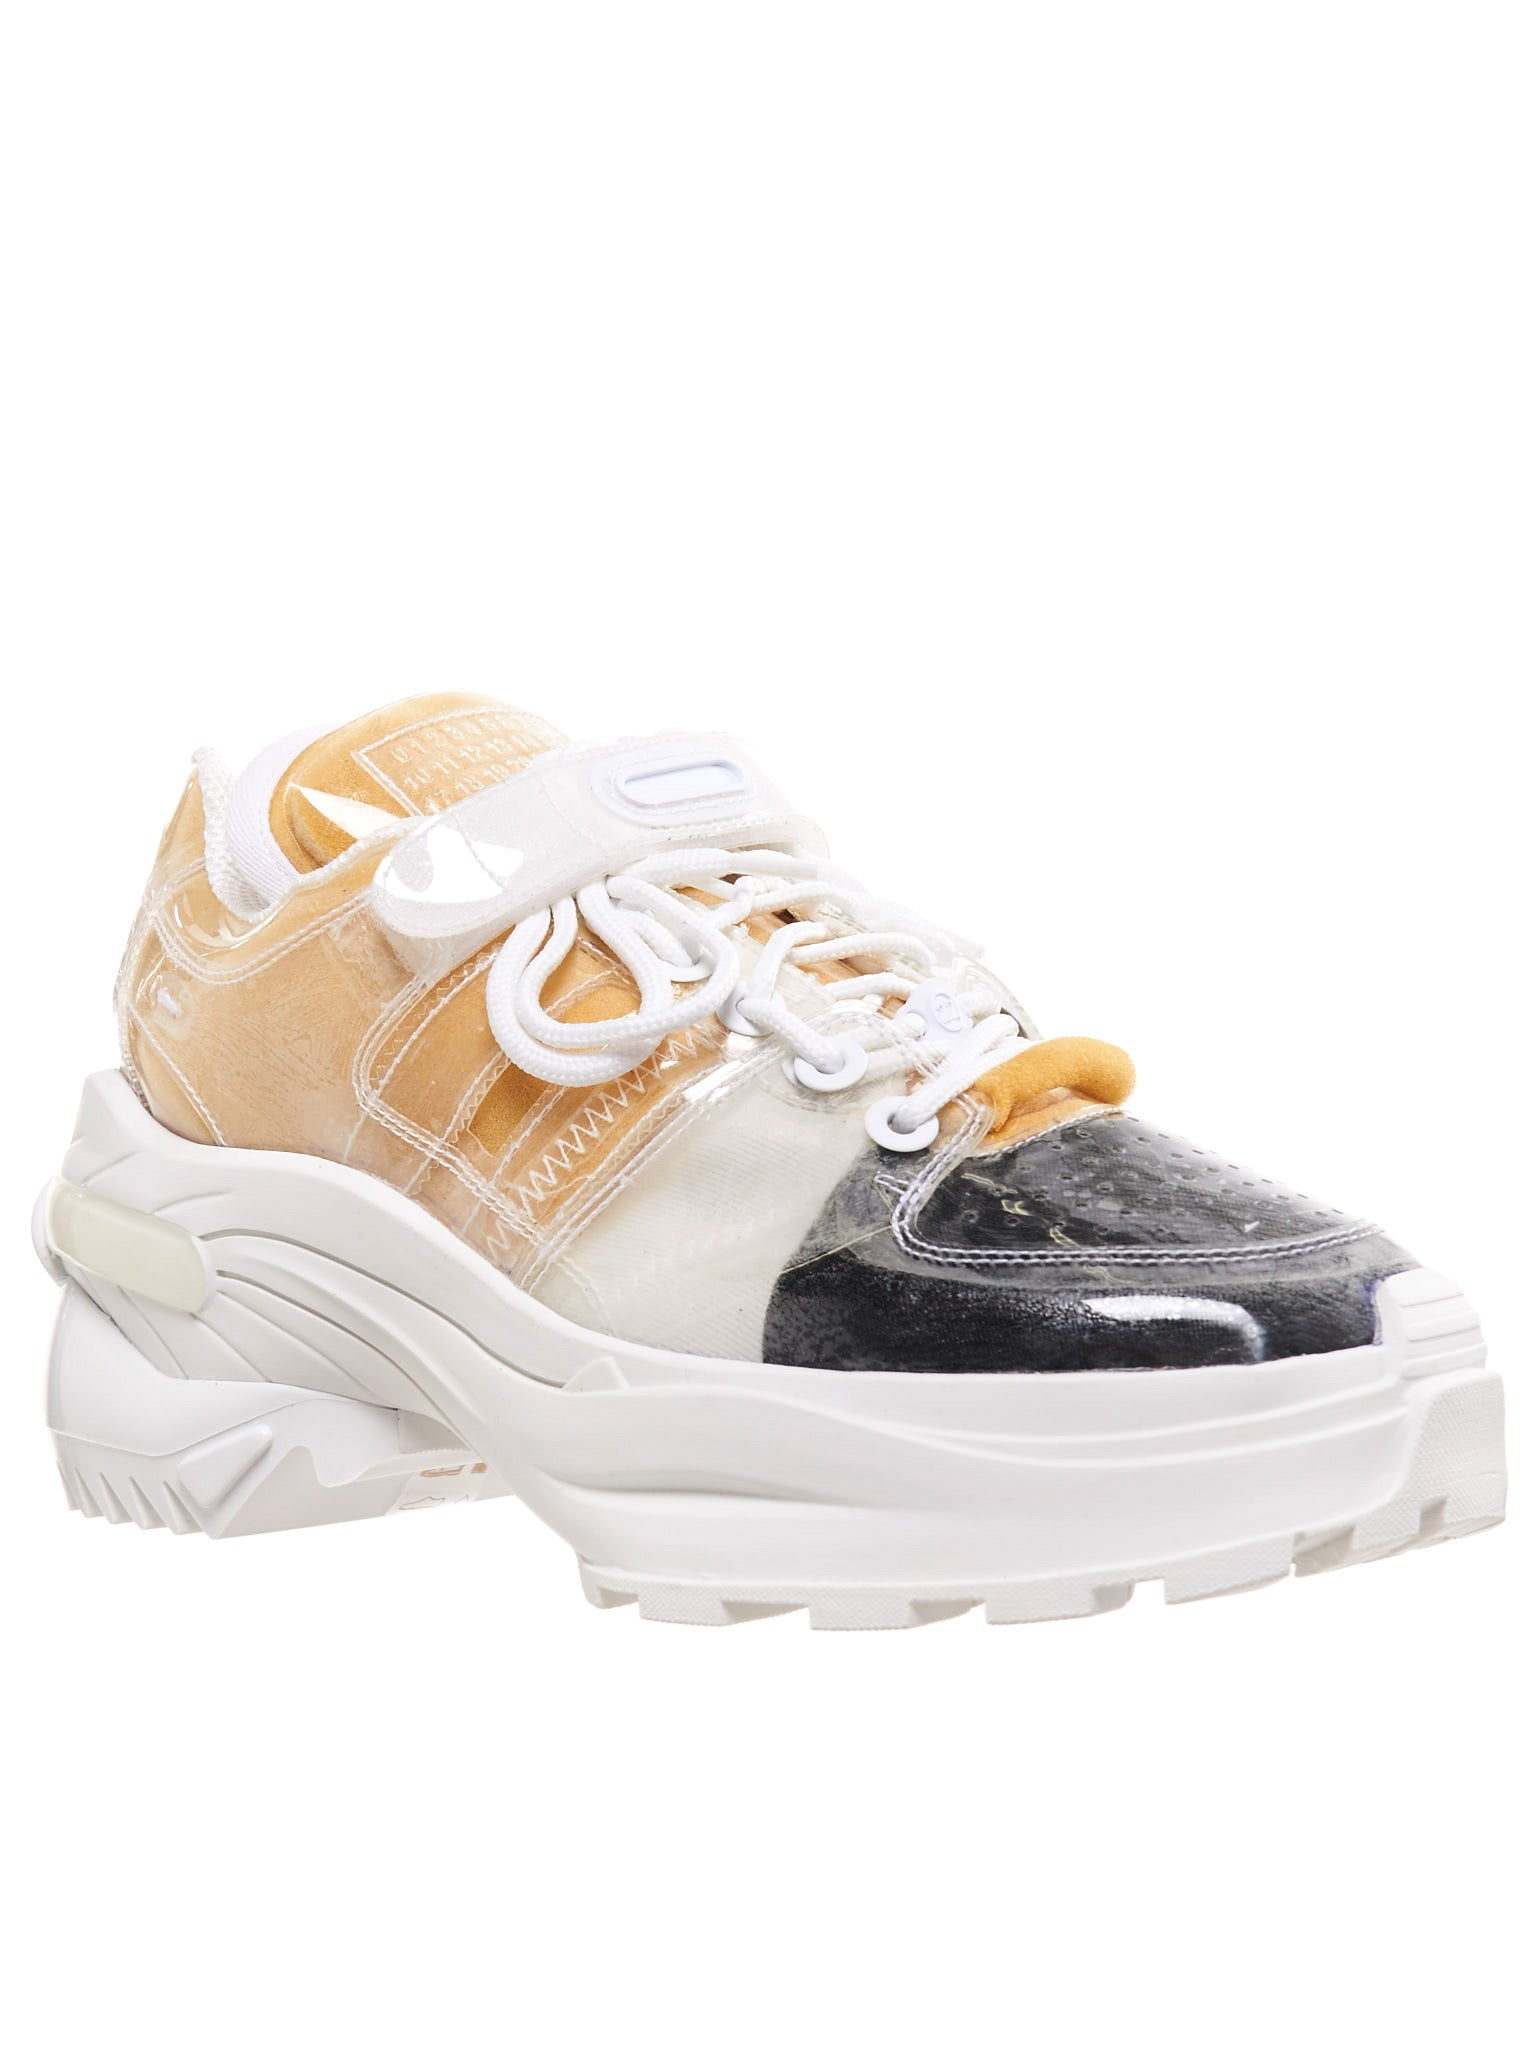 Maison Margiela Sneakers - Hlorenzo Side